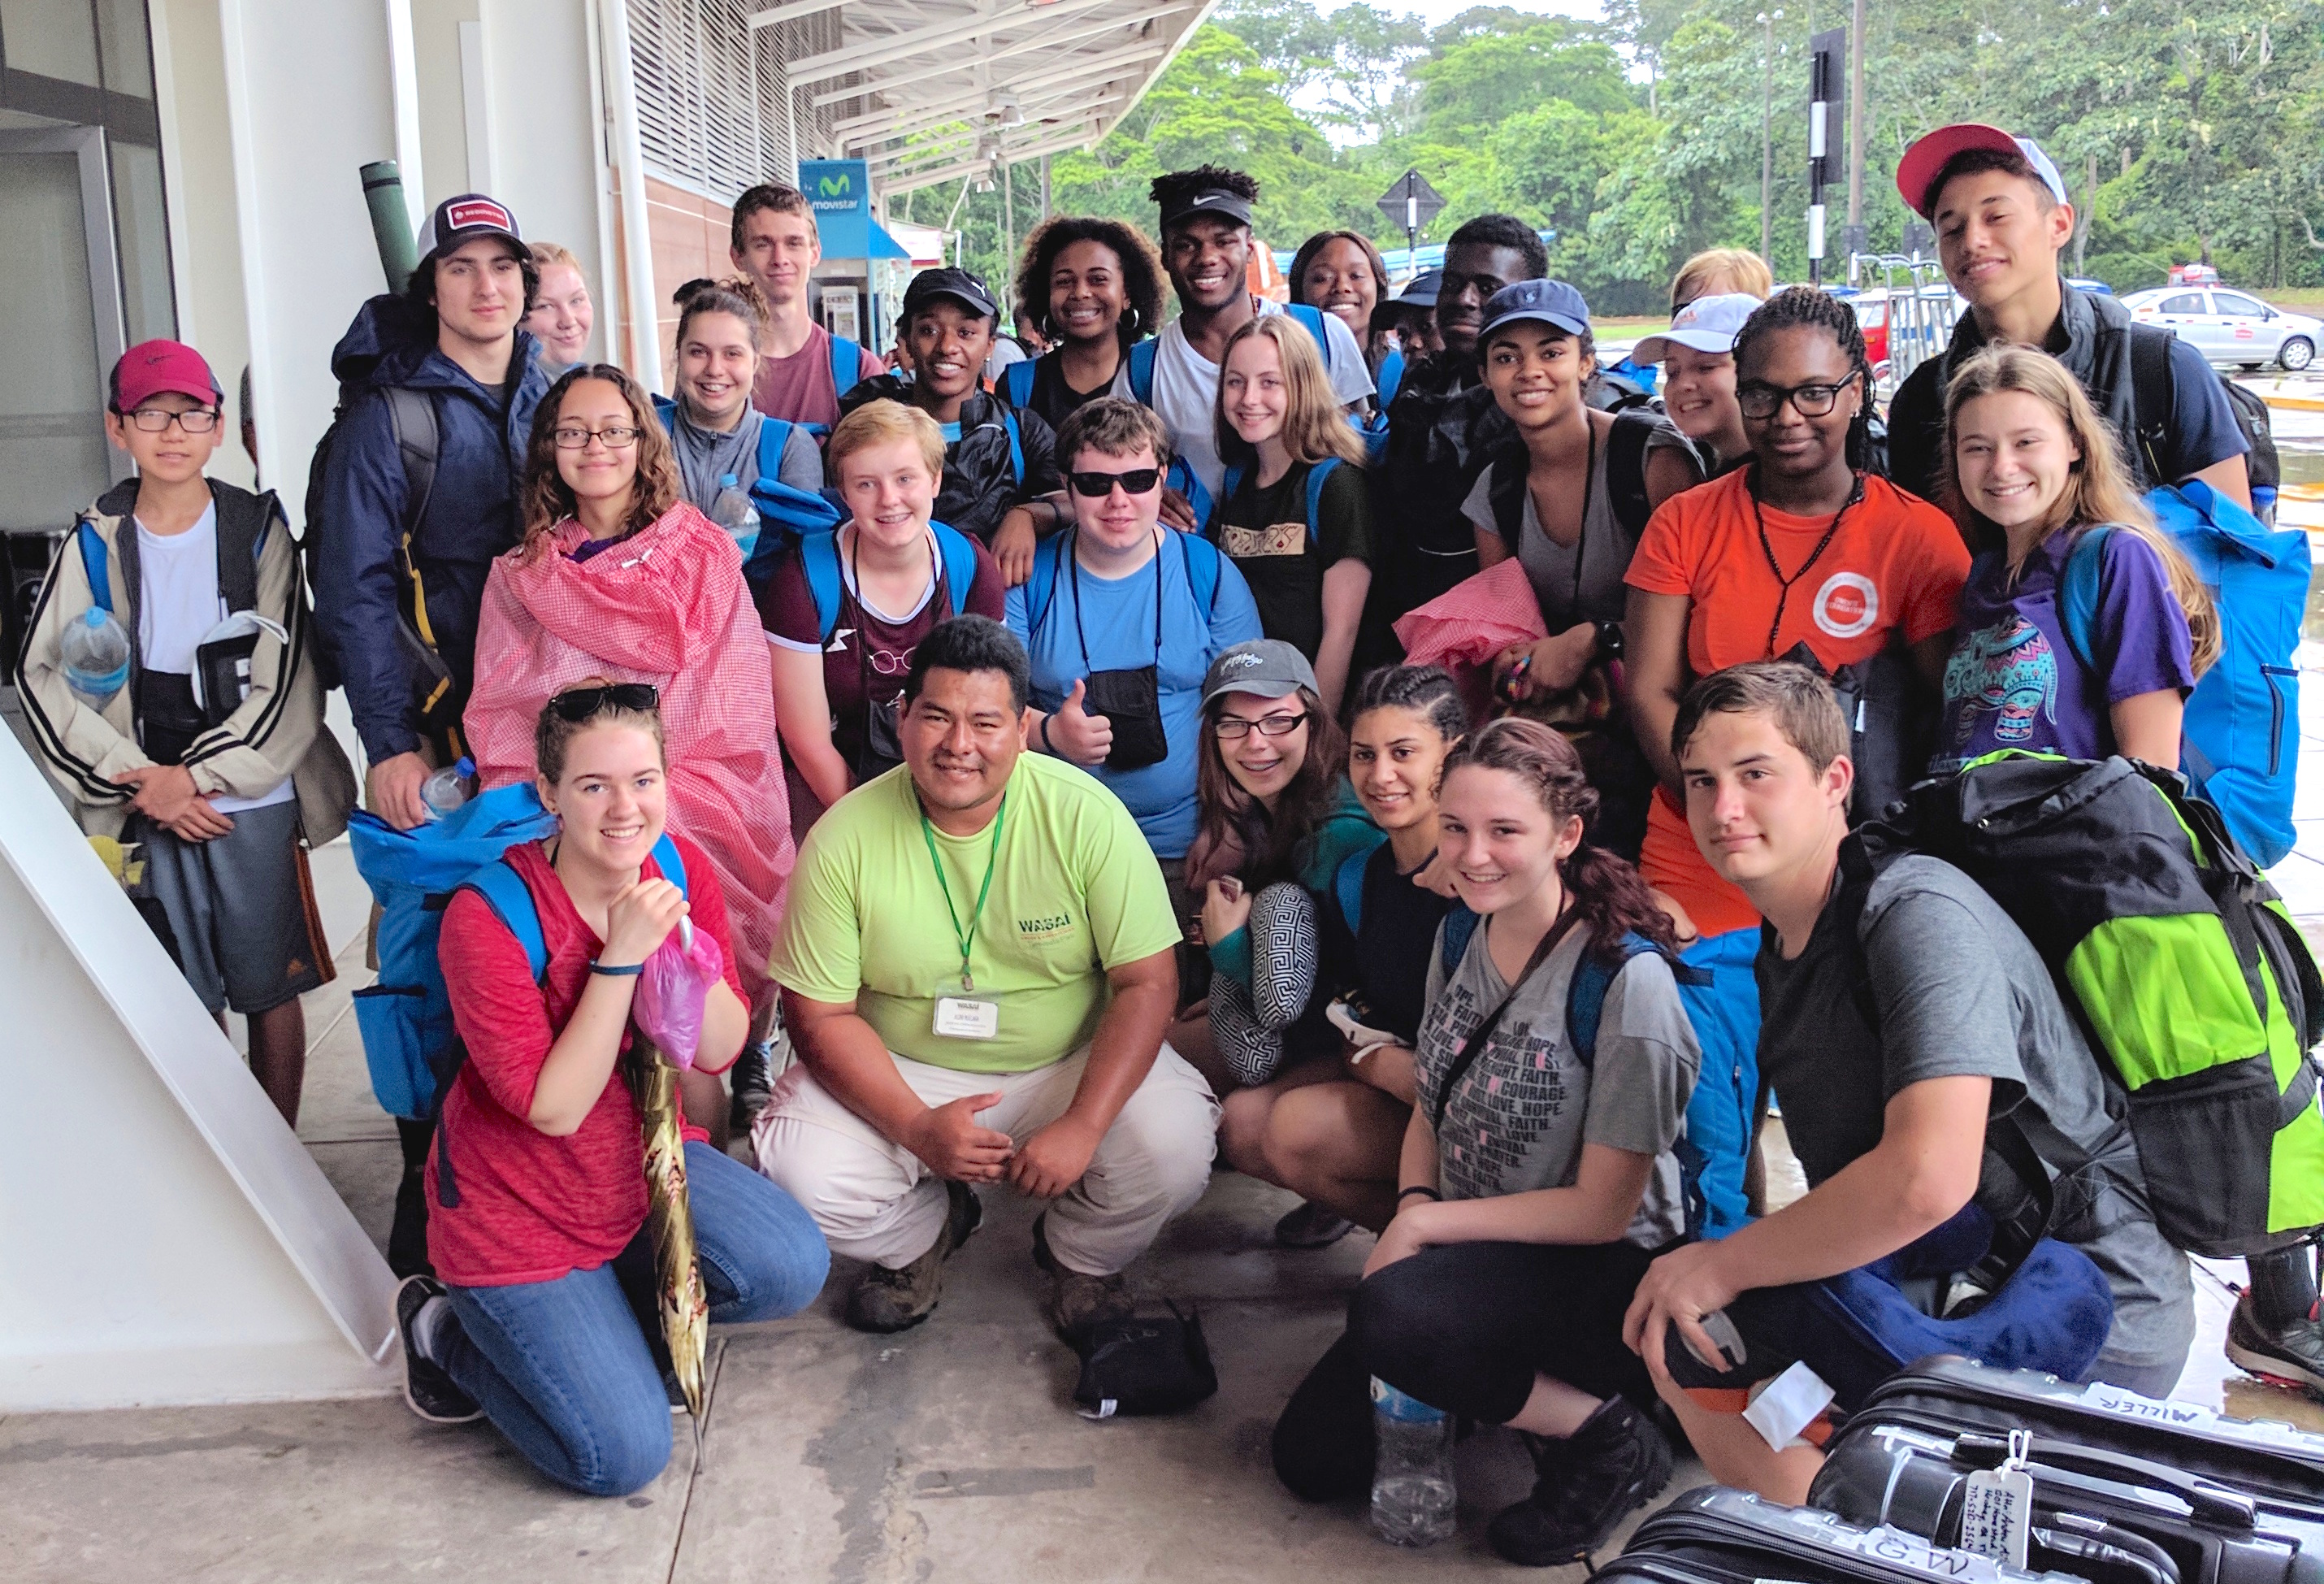 A group of 25 Milton Hershey School high school students and four staff members recently attended a Global Leadership Summit in Peru as part of our Multicultural and Global Education program.